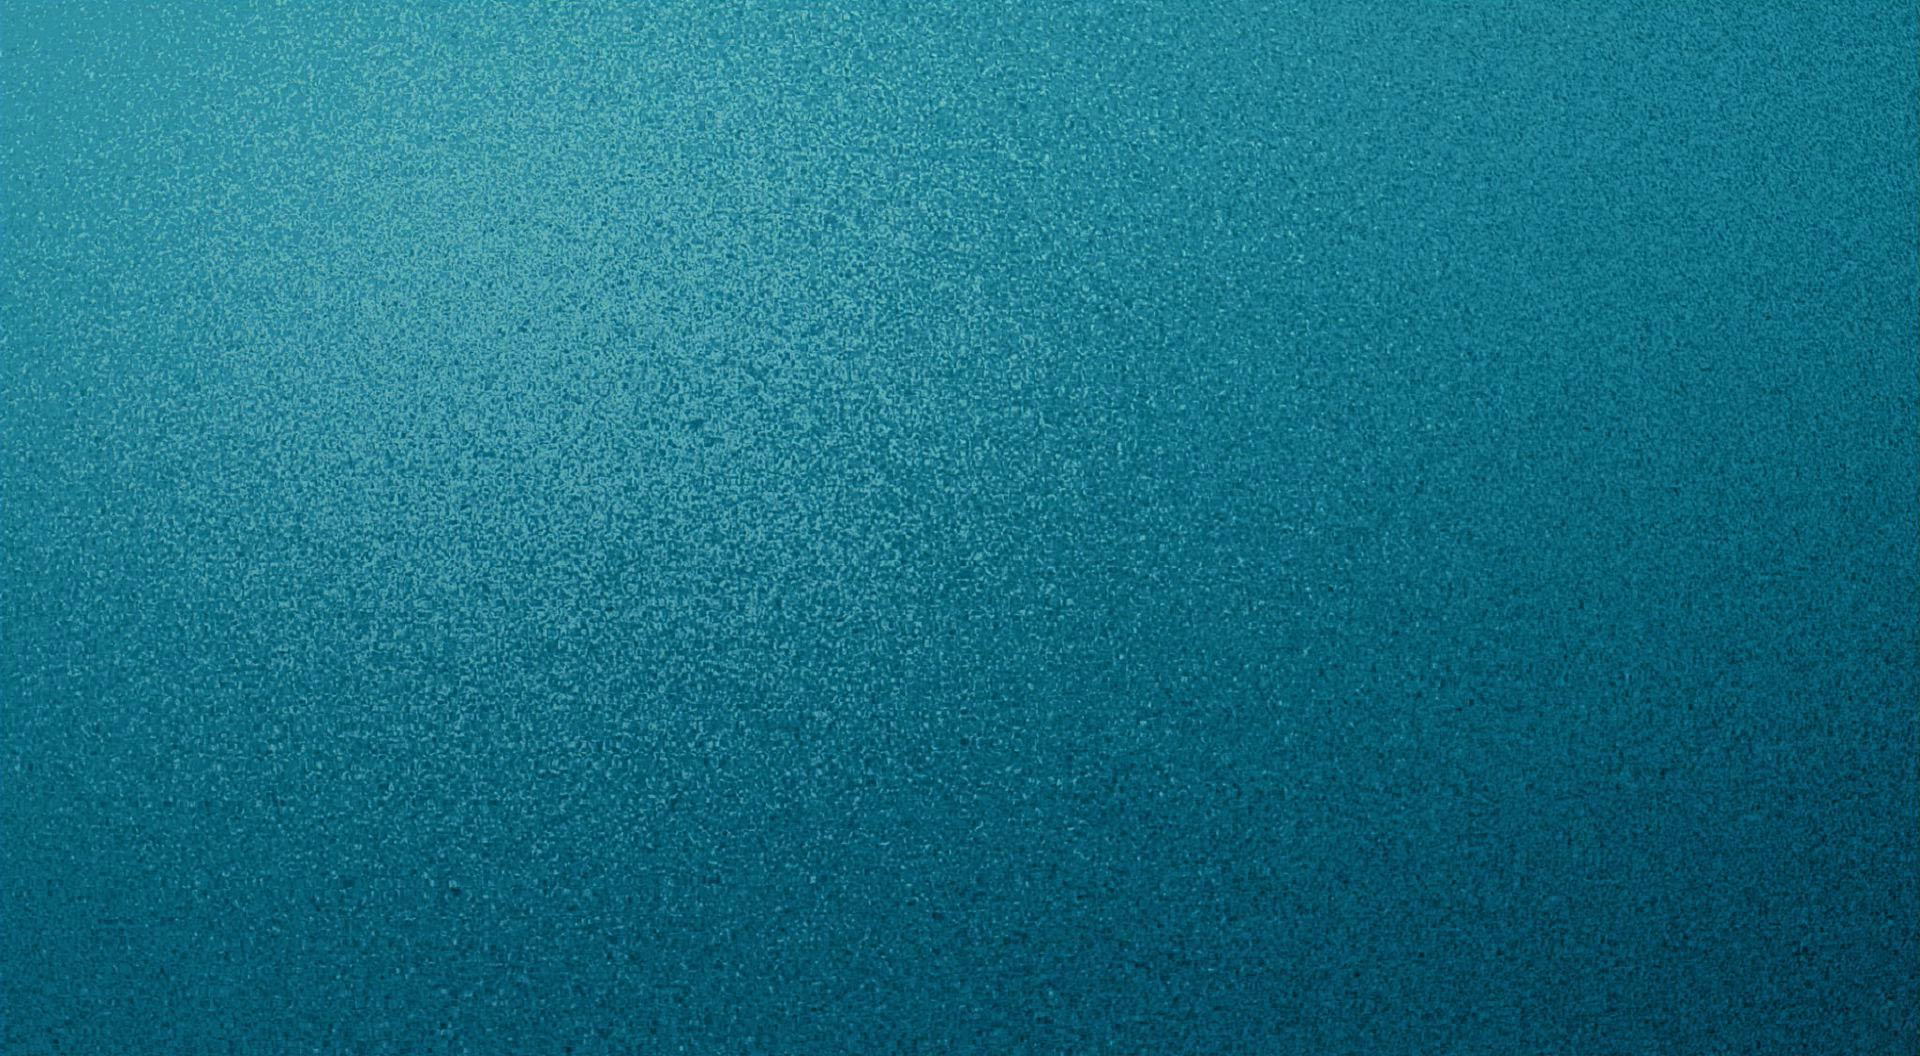 wallpapers and texture on -#main